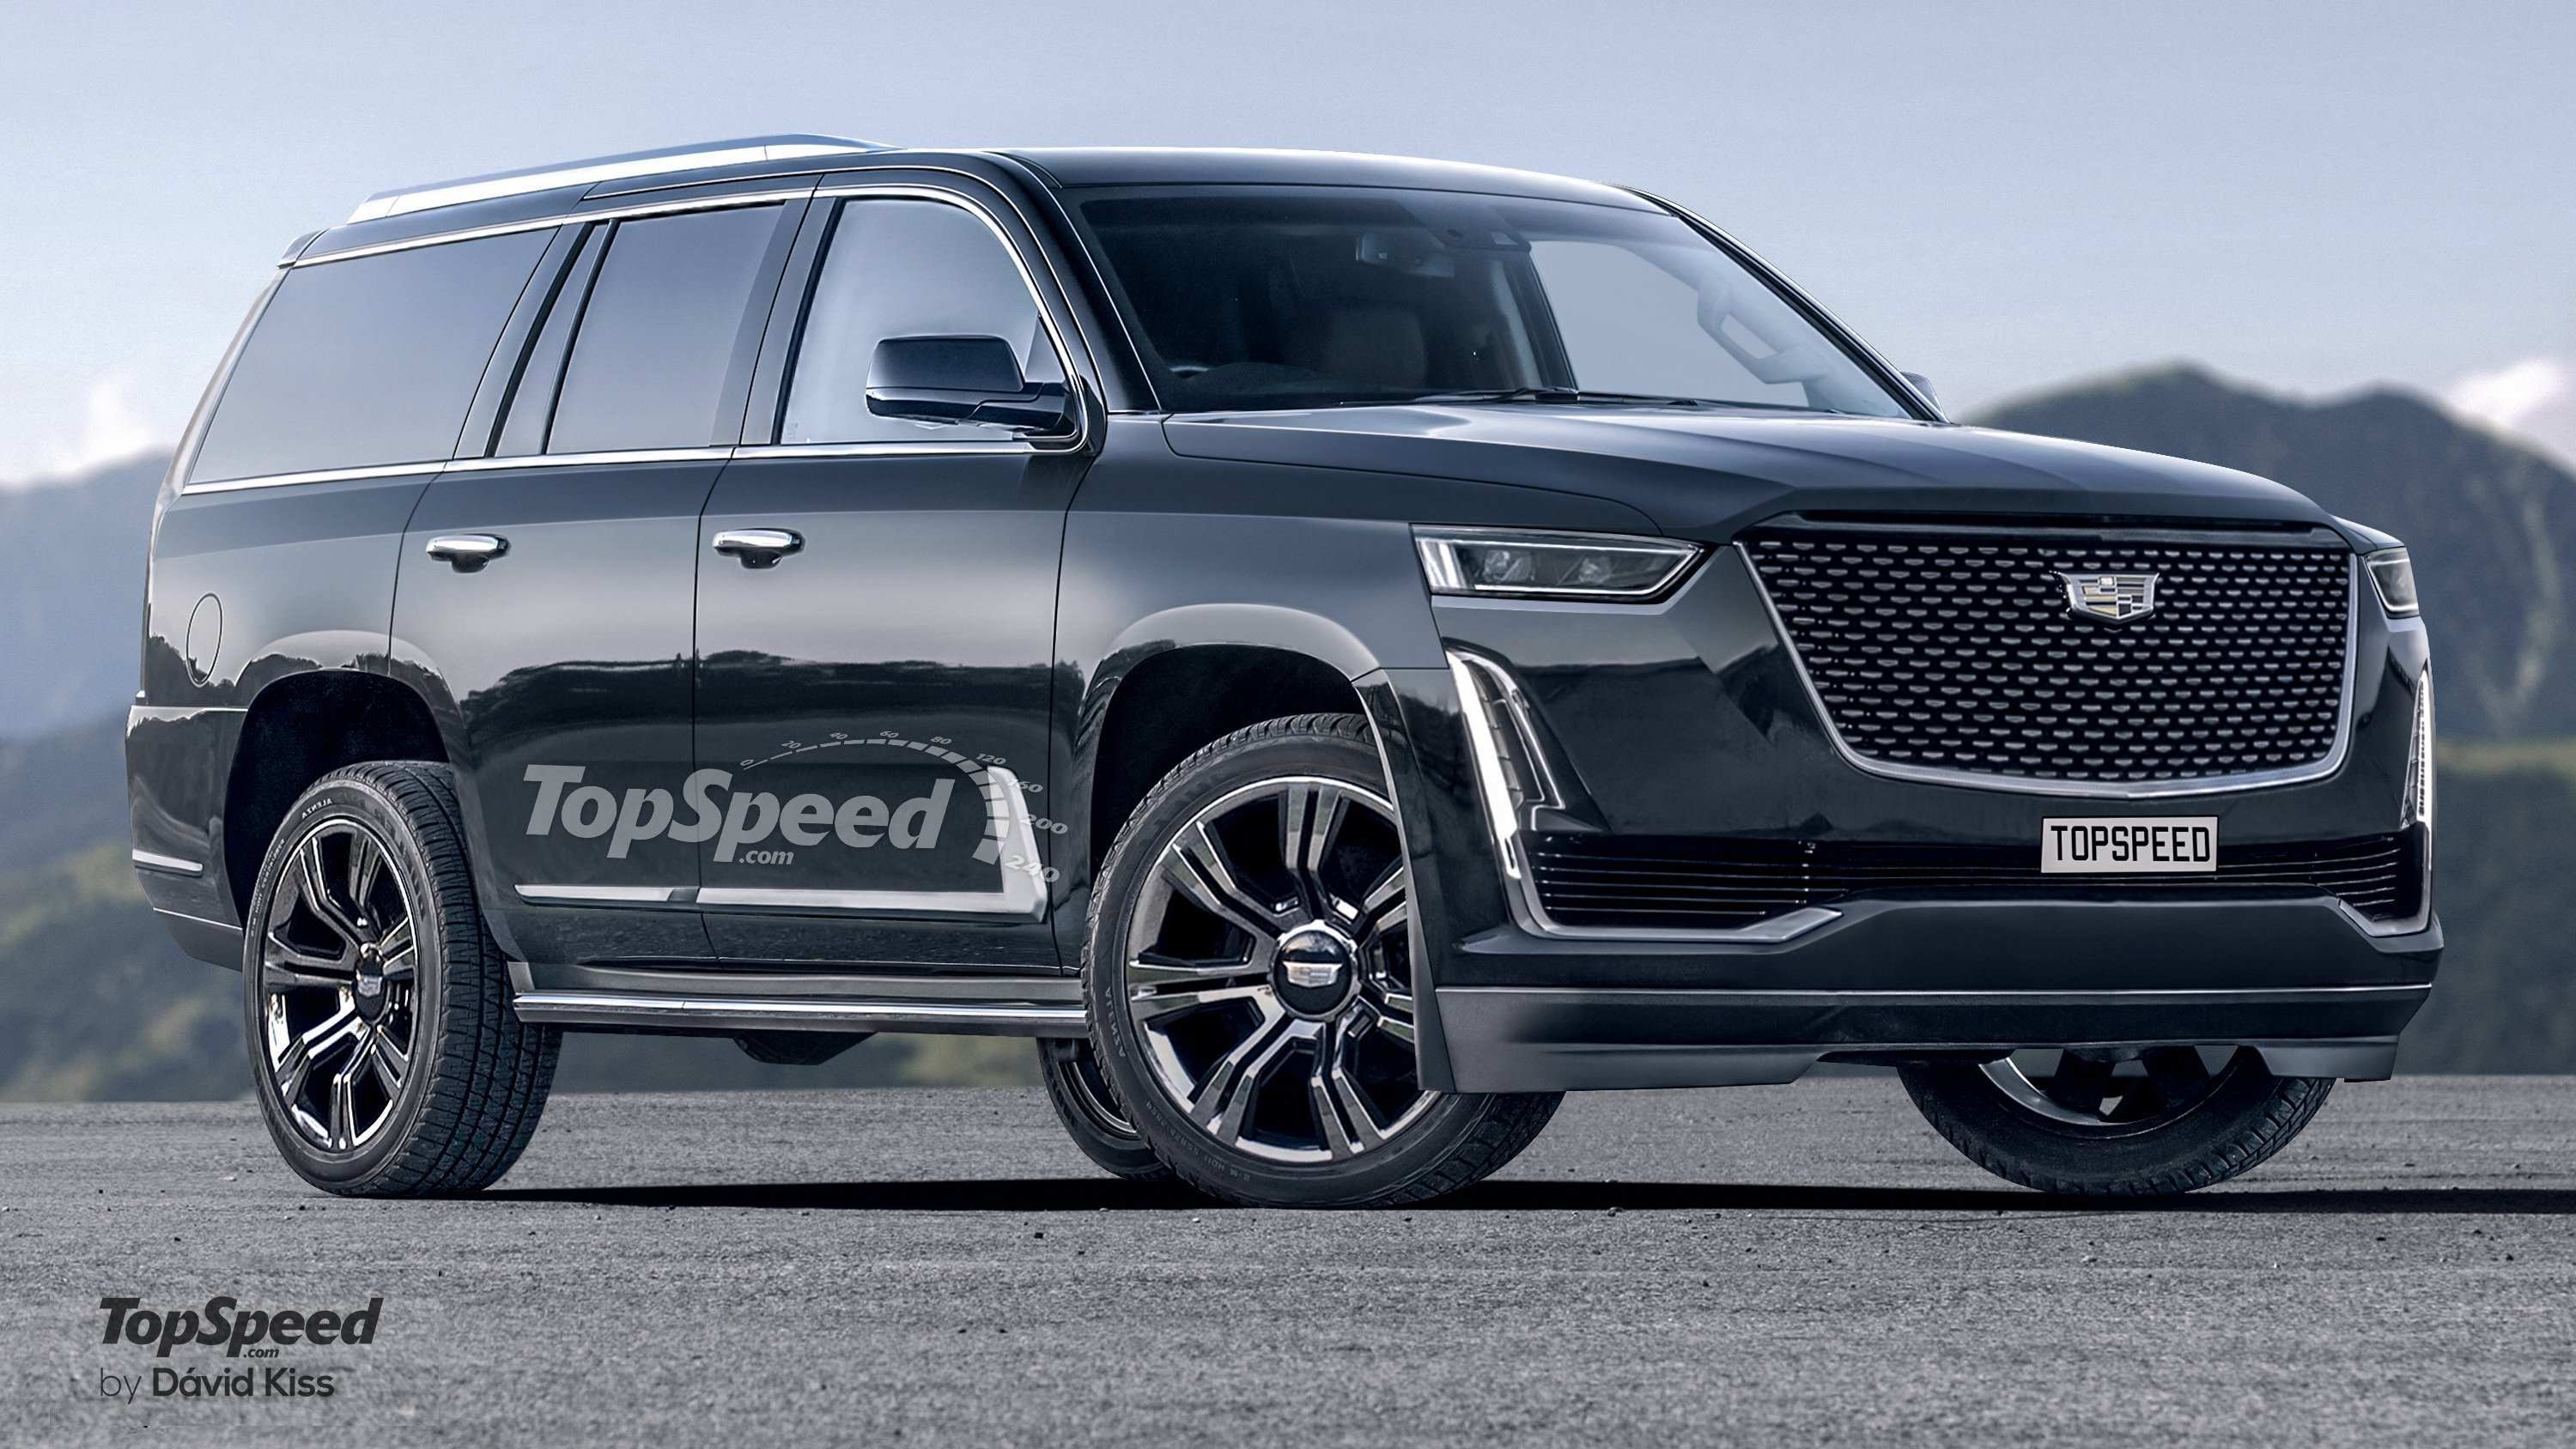 73 Concept of 2020 Cadillac Escalade For Sale Release Date for 2020 Cadillac Escalade For Sale